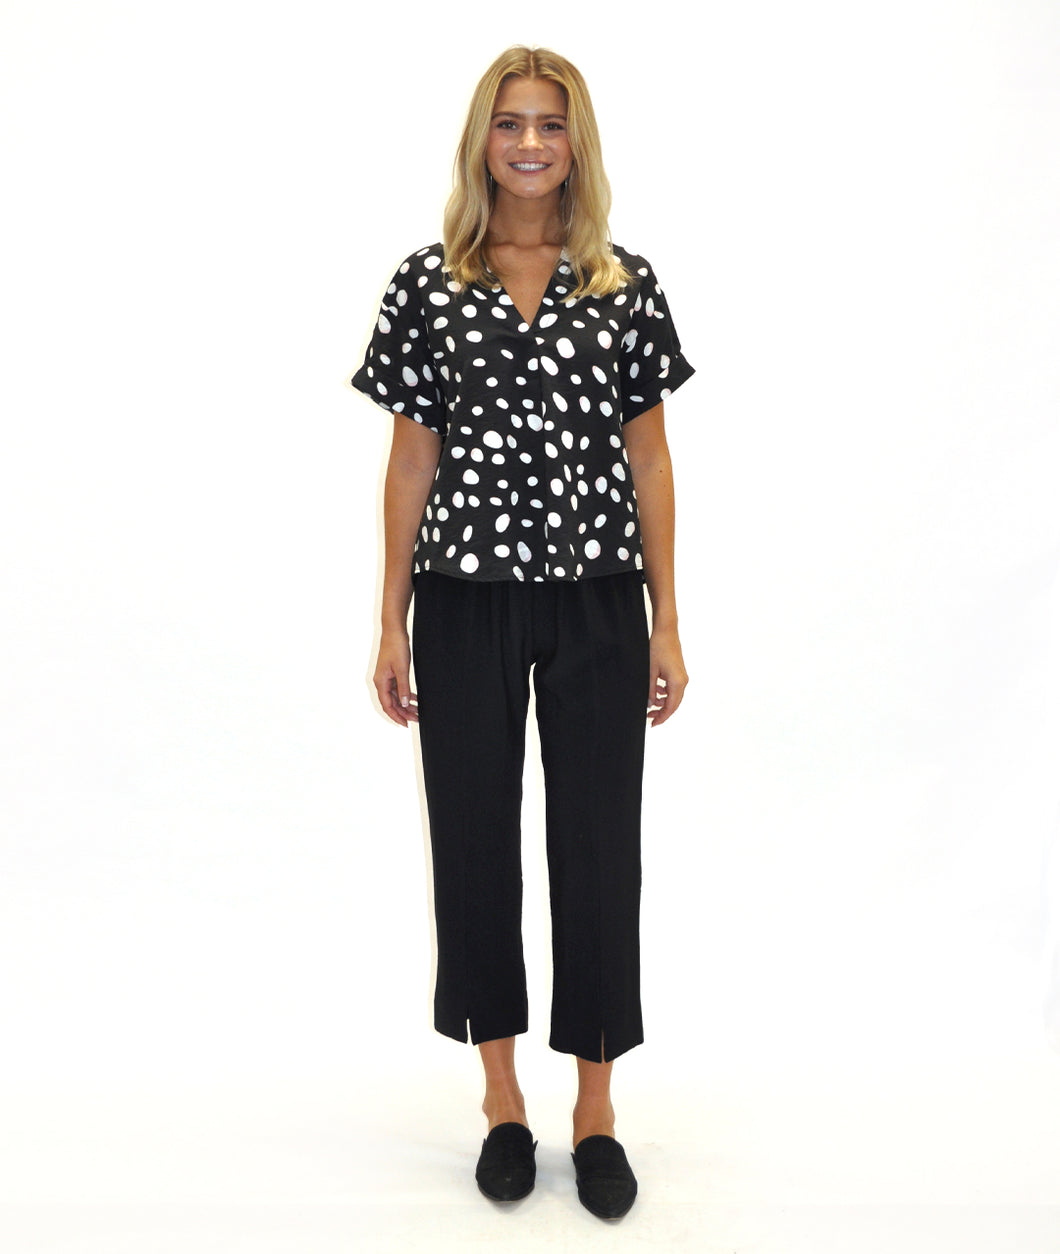 model in a black, polkadot print top with a short black pant, in front of a white background